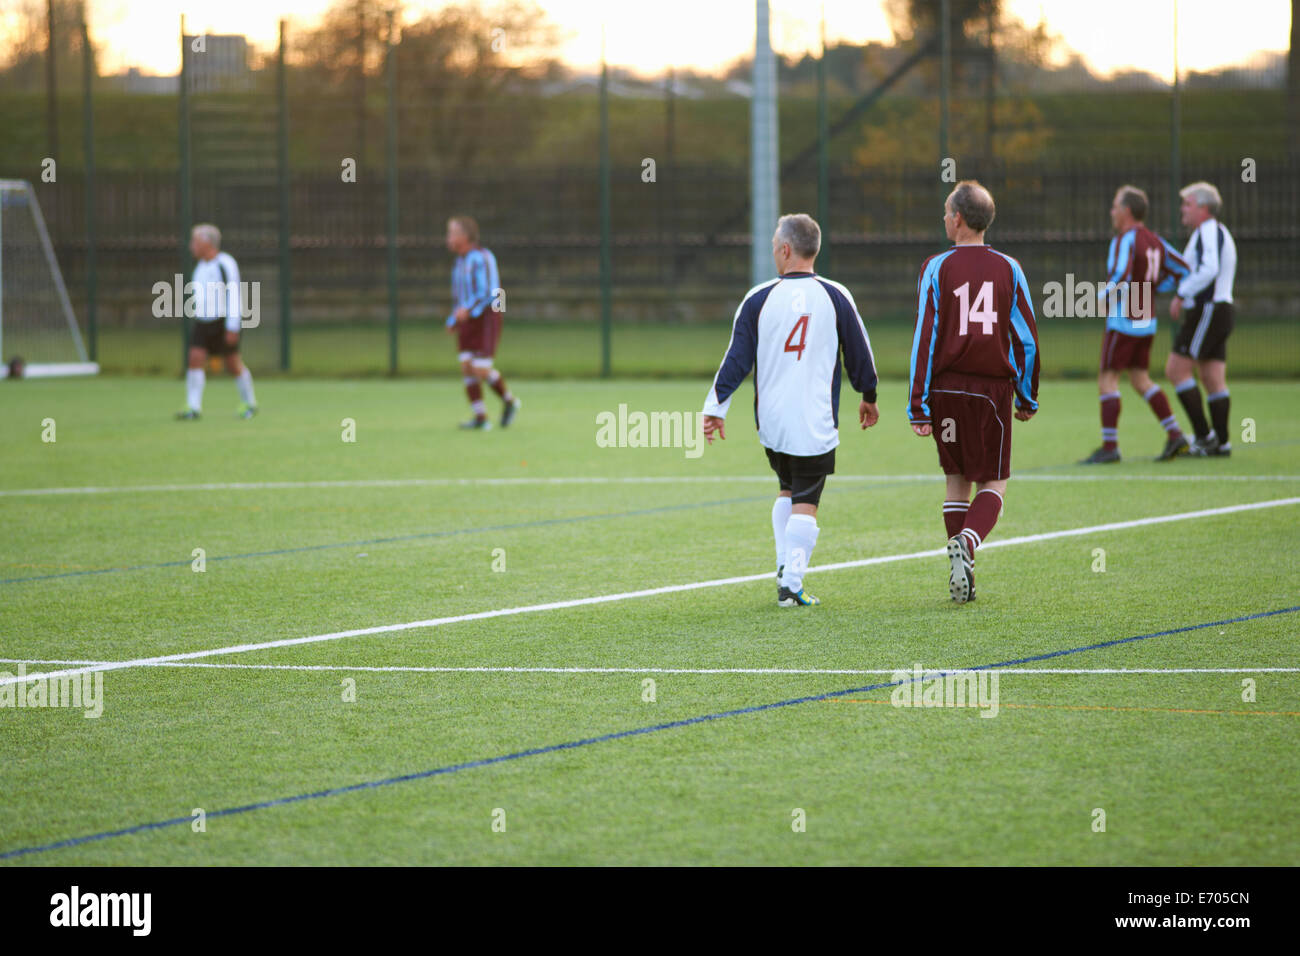 Football players at stop in game - Stock Image